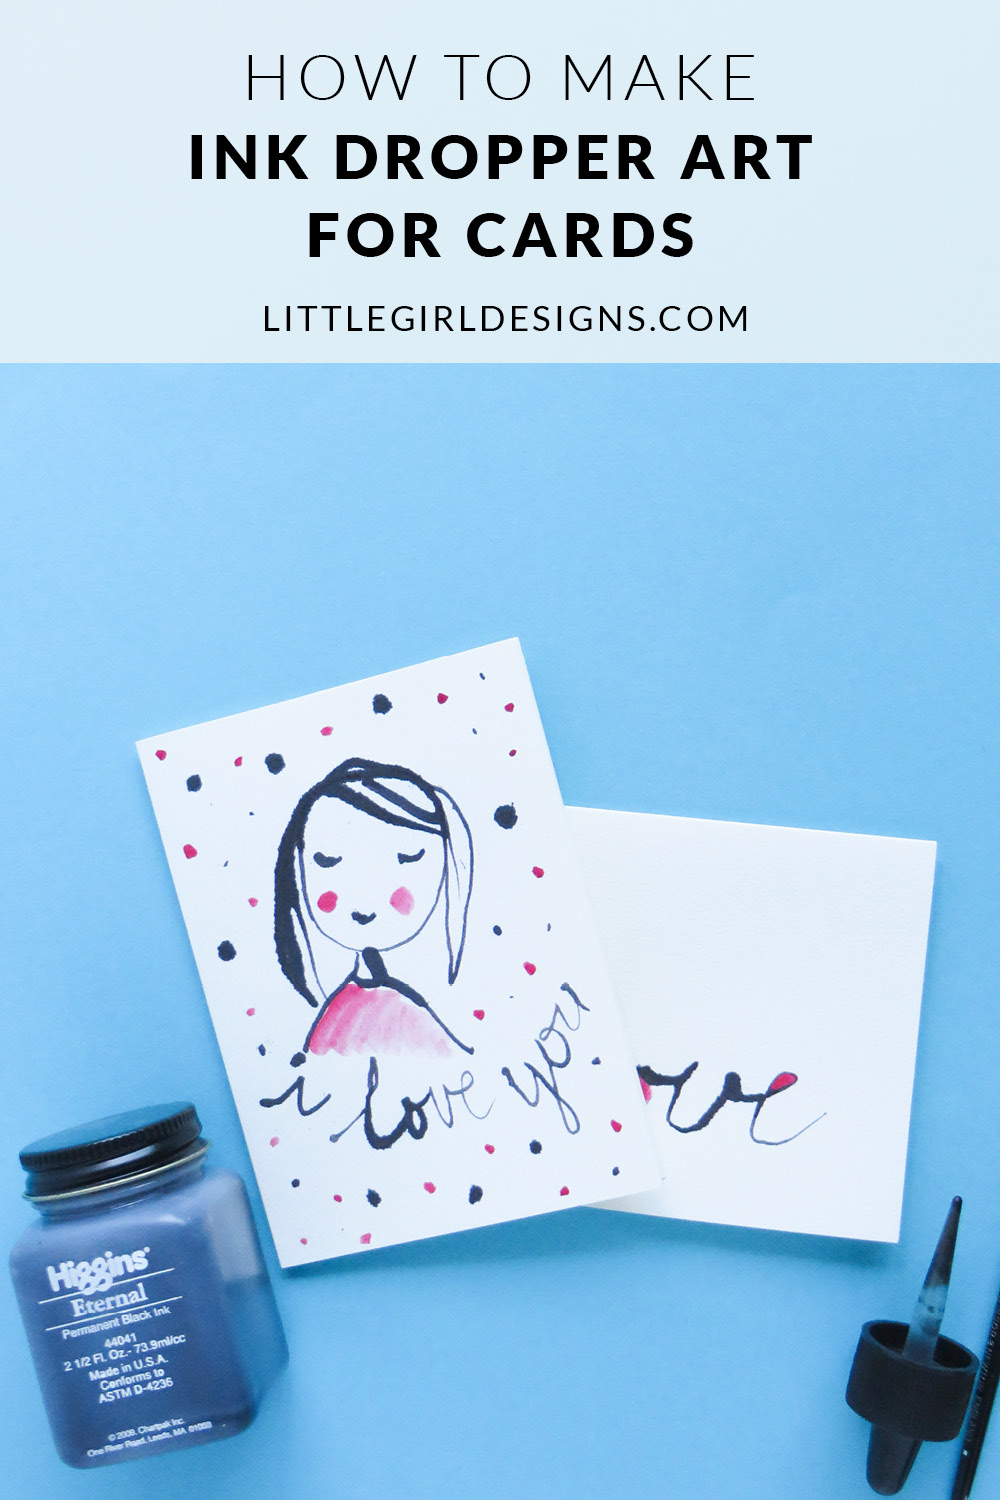 Ink Dropper Art for Cards - Have you ever made ink dropper art? It's really easy and a great technique to use for card-making. Learn more at littlegirldesigns.com